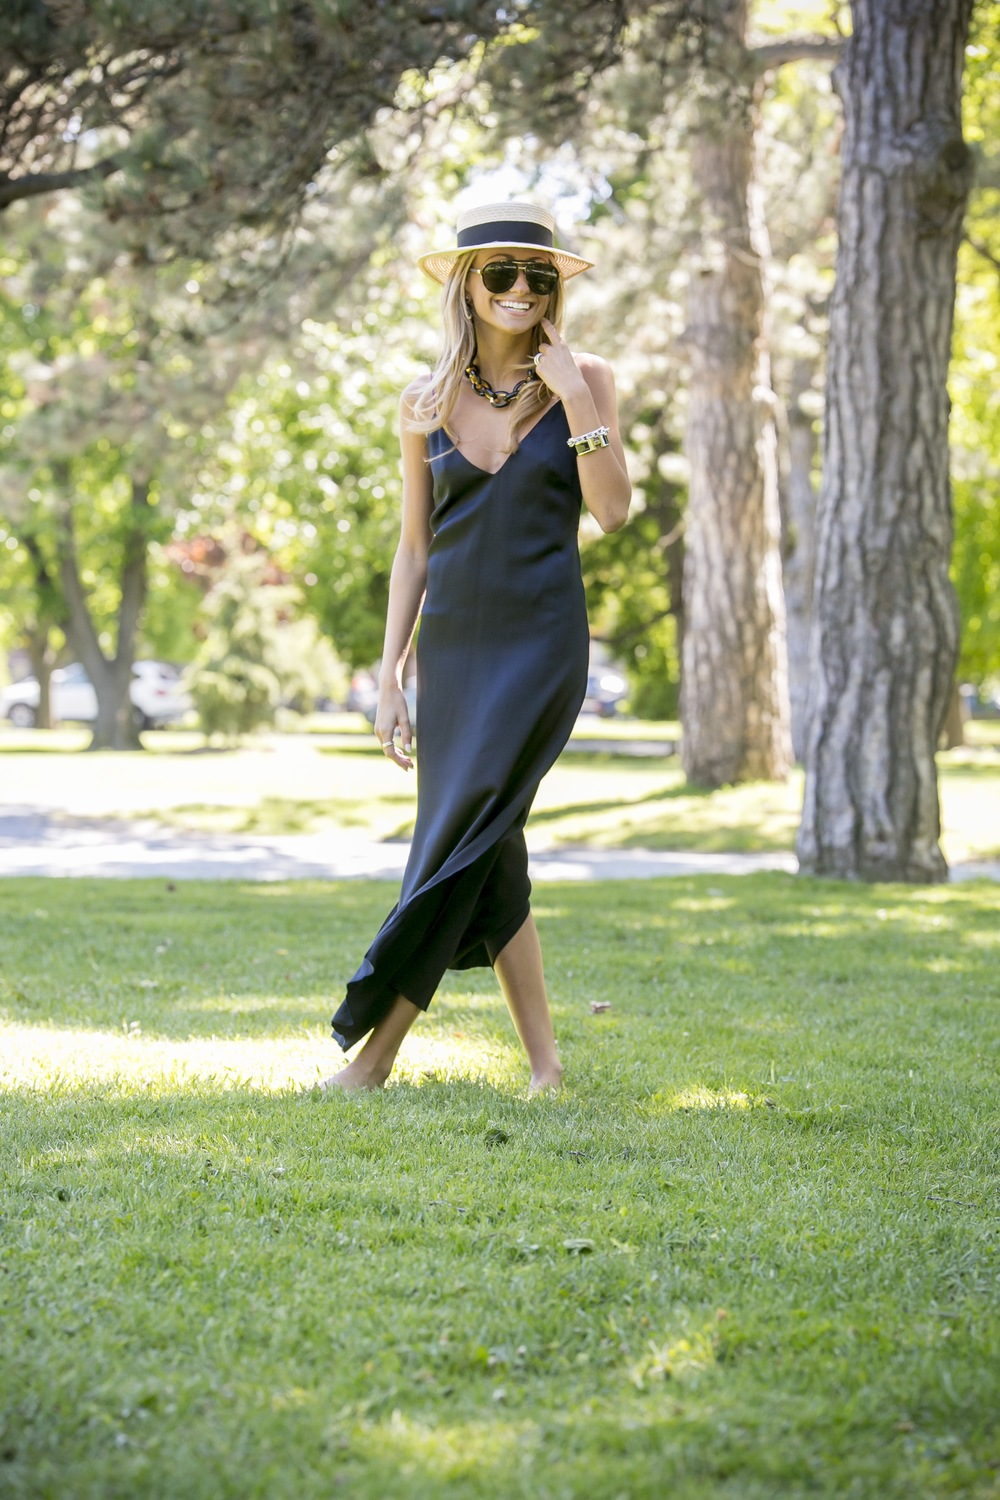 one of the biggest spring trends for 2016 is the black silk slip dress which can be worn as seen here or also layered with a shirt underneath